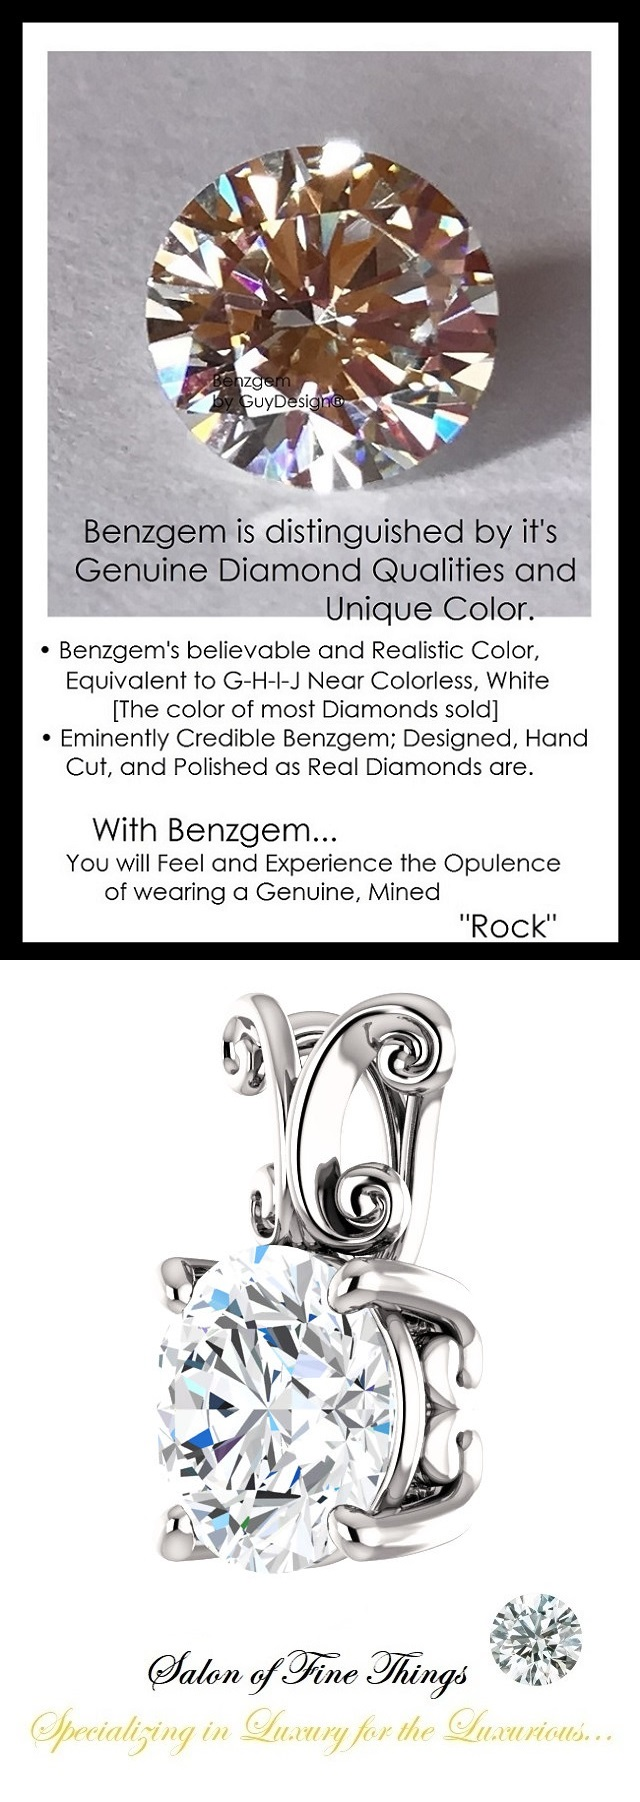 10211-benzgem-by-guydesign-g-h-i-j-color-best-alternative-diamond-1.91-ct-h-a-cut-round-shape-louis-xiv-baroque-scroll-necklace-pendant-14k-white-gold-2.jpg